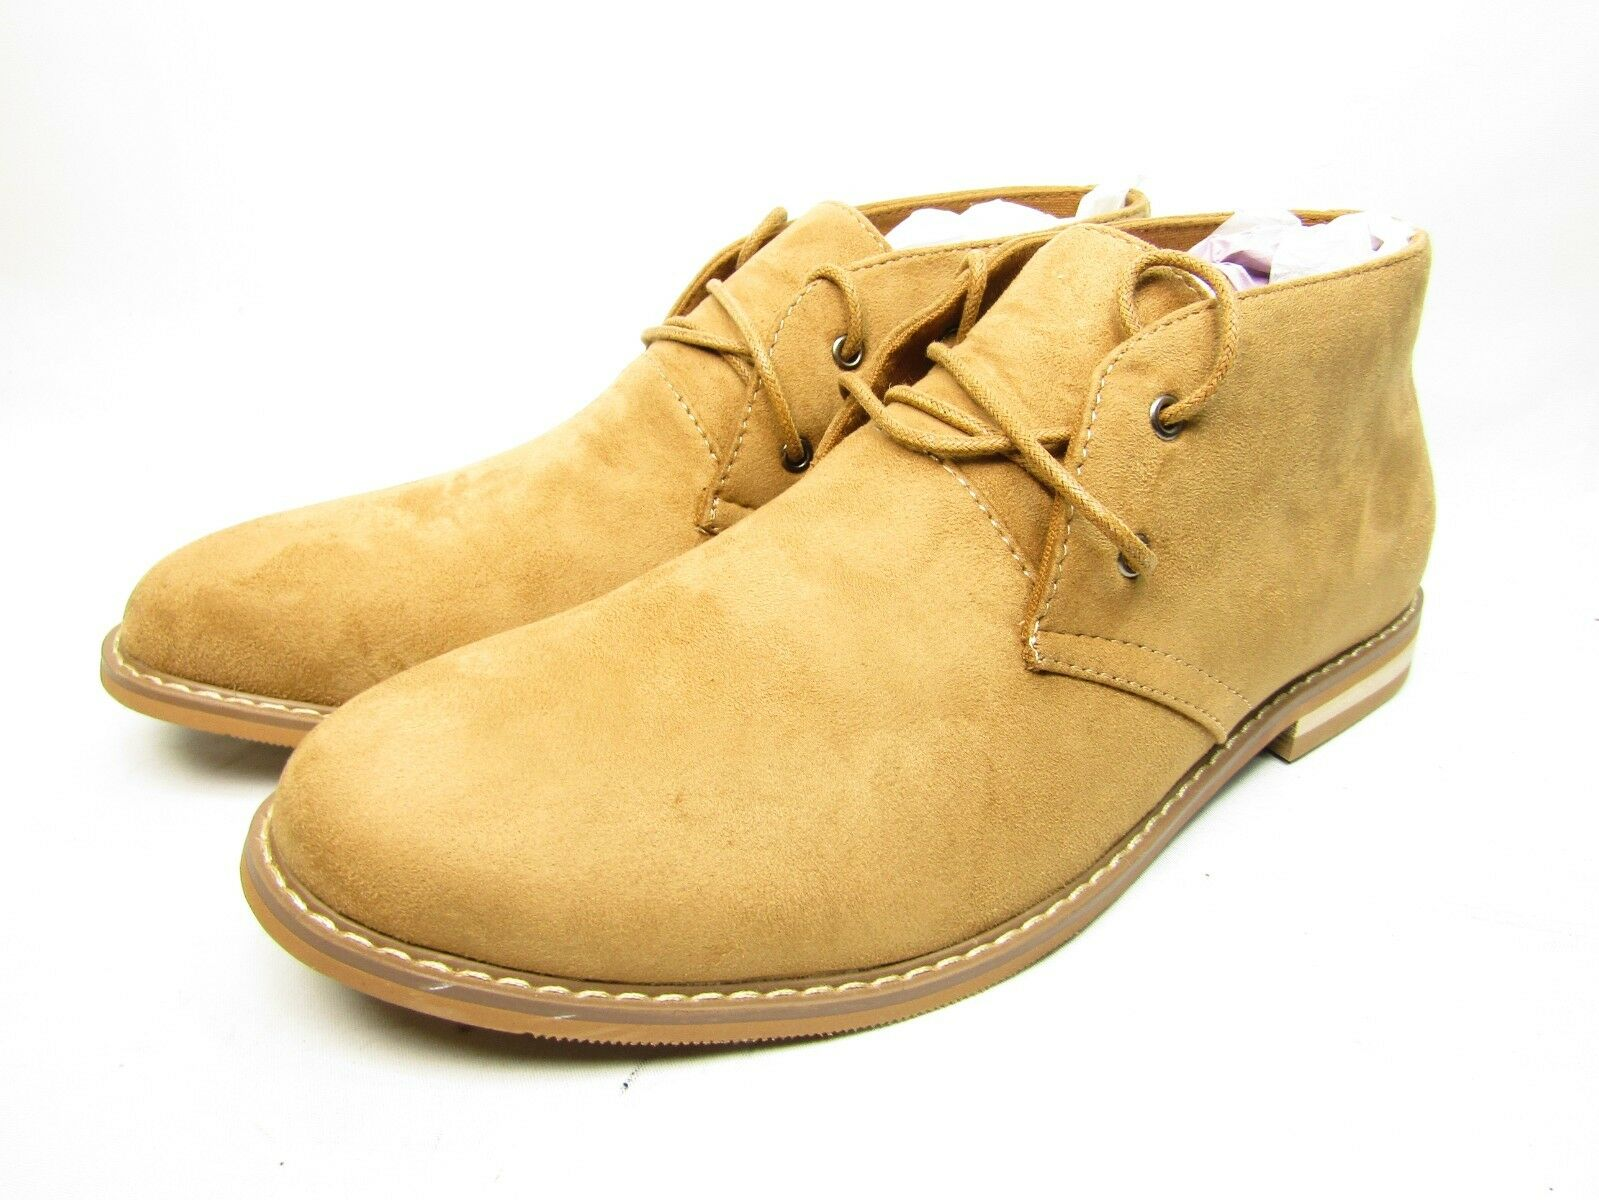 Vance Co. Men's 'Manson' Lace-up Faux Suede High Top Chukka Boots Tan Size 10